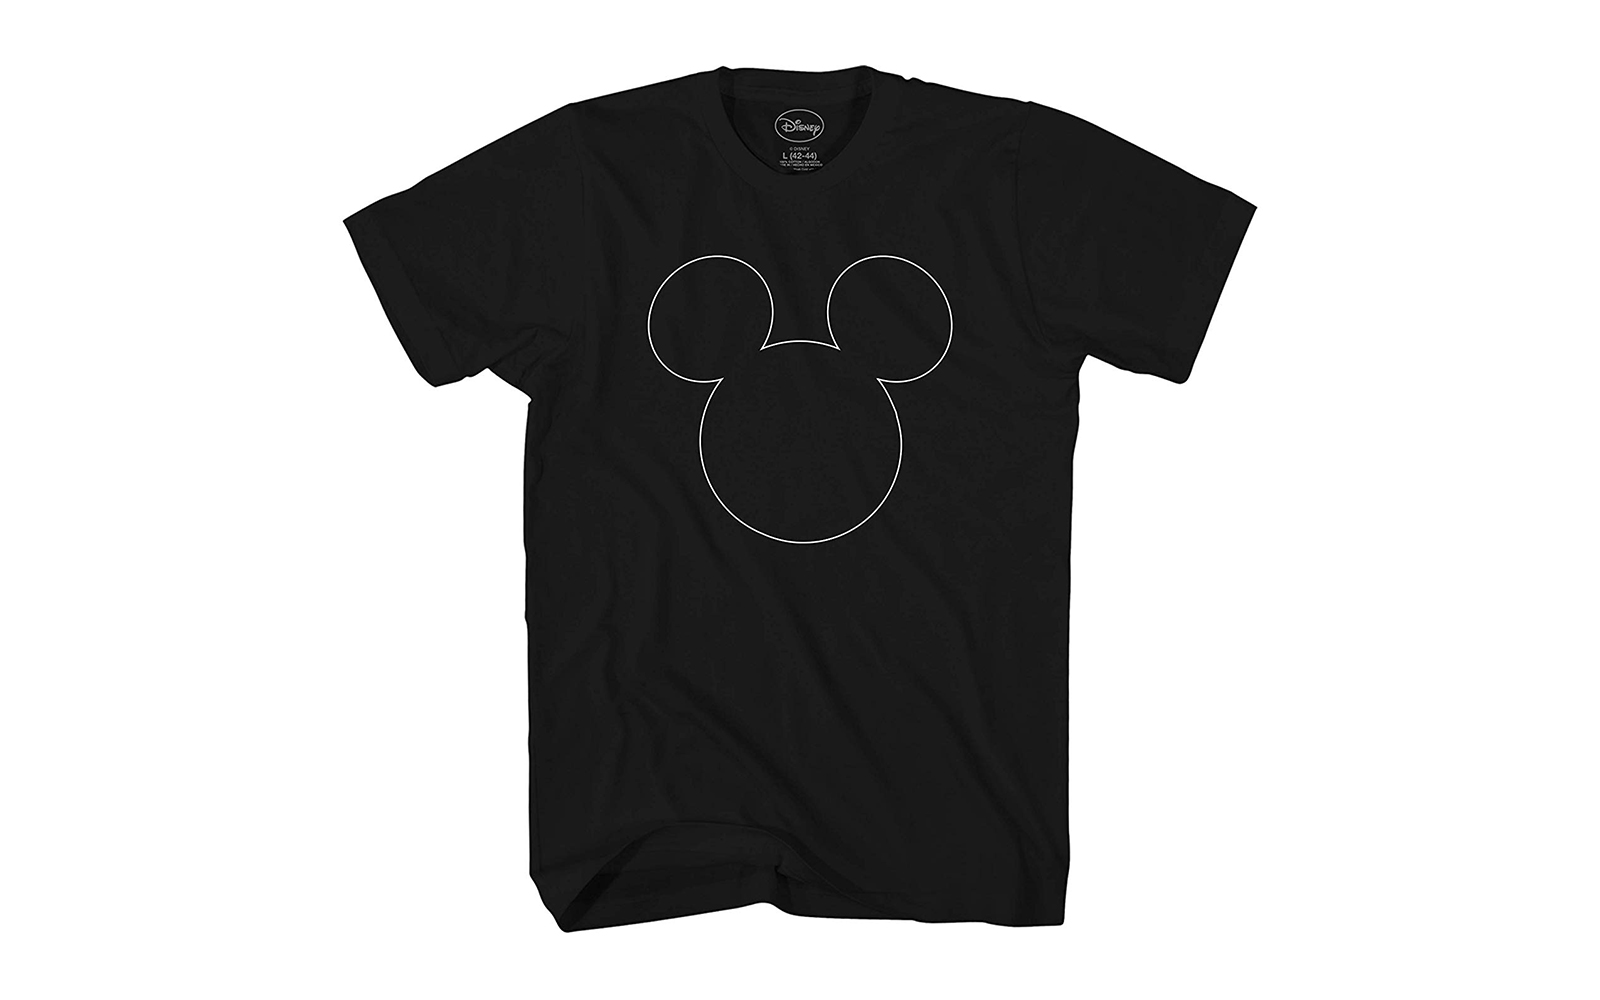 e085291e1 20 of the Most Magical Travel Essentials Disney Fans Need for Their ...